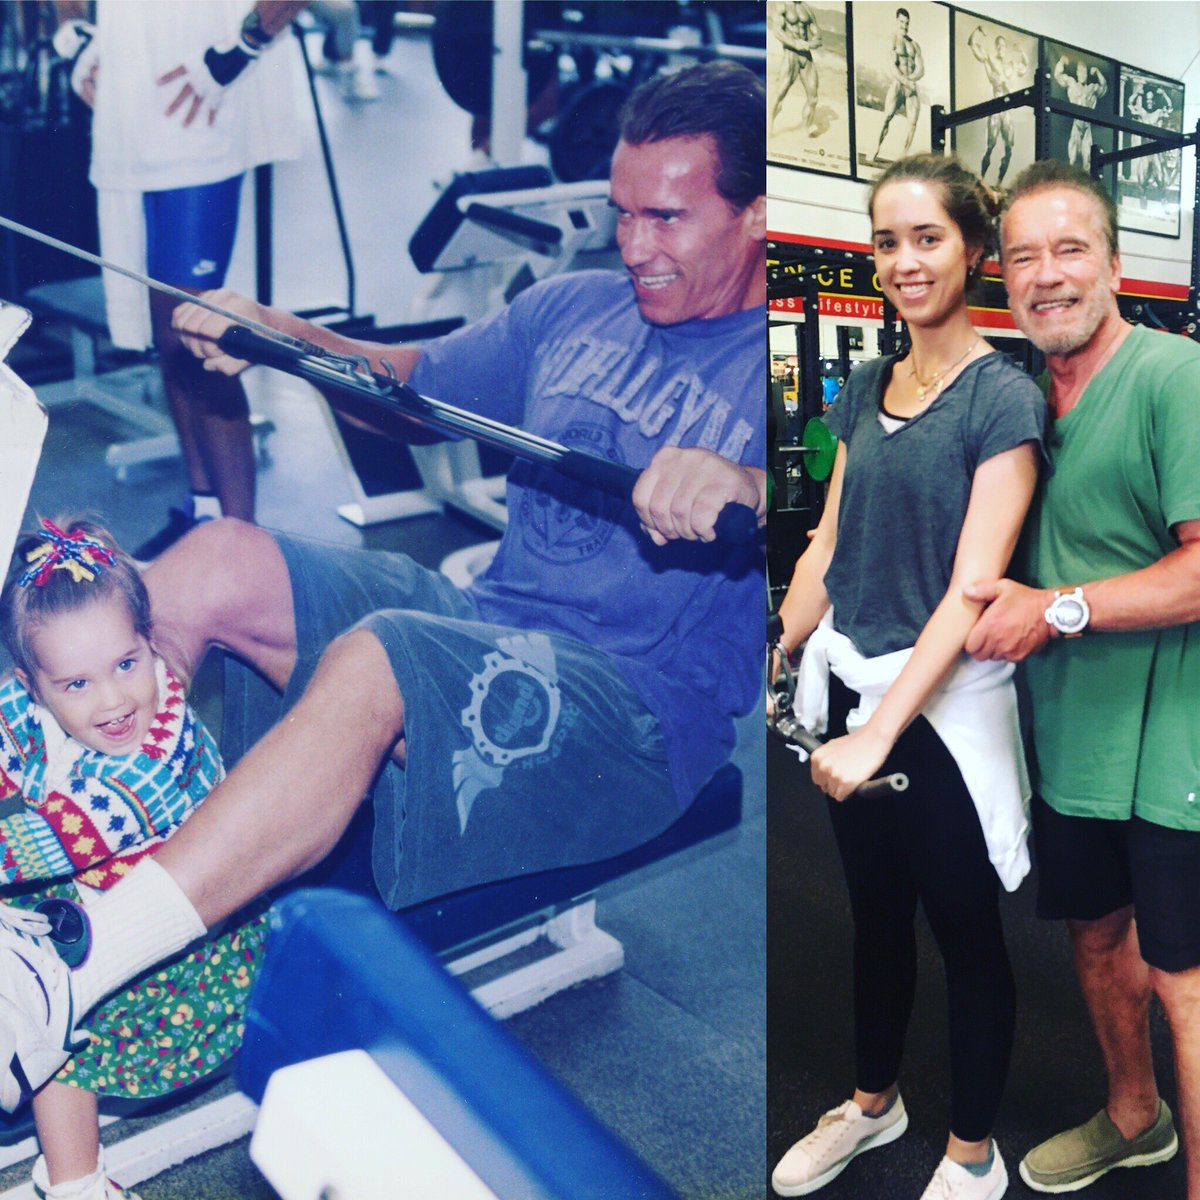 Happy birthday @CSchwarzenegger! You've always been my favorite training partner! I love you. https://t.co/cs6nudxCCk